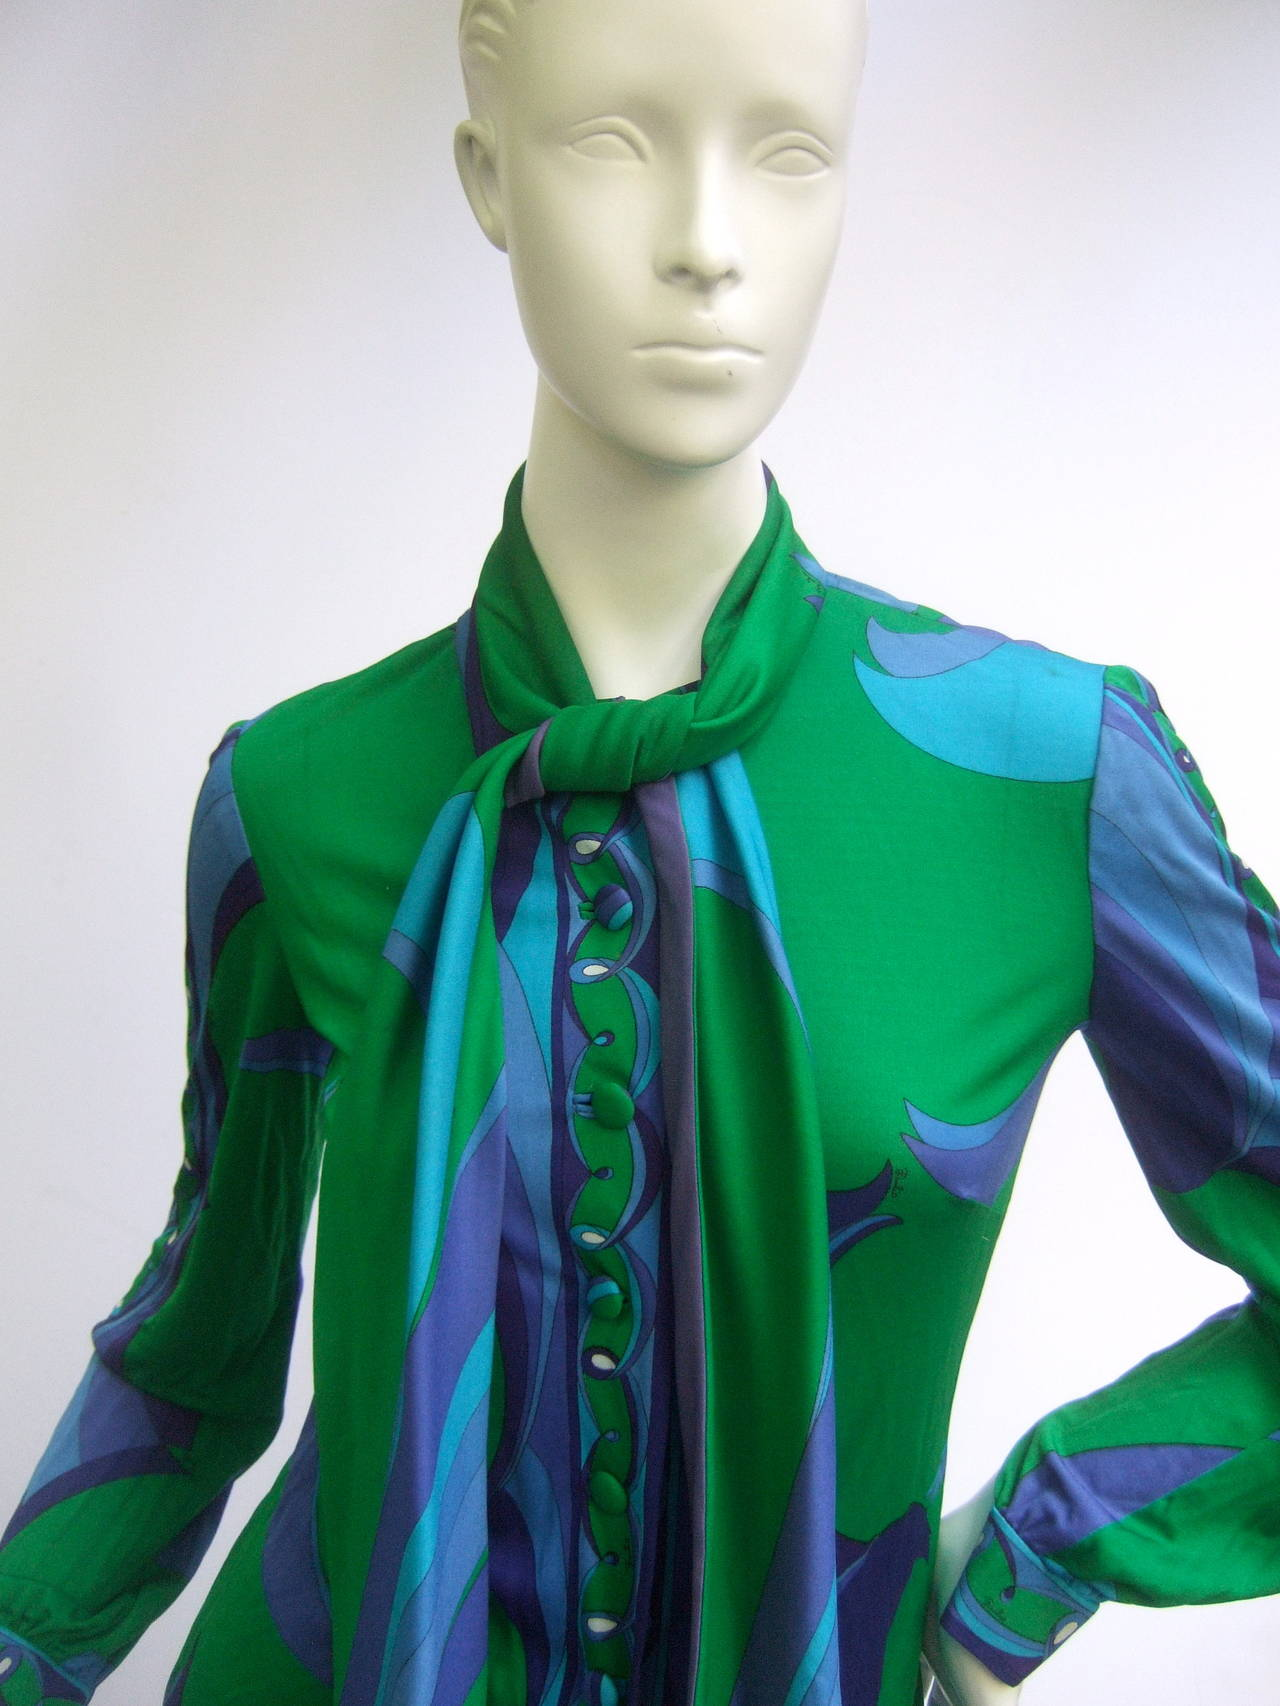 EMILIO PUCCI Silk Jersey Blend Blouse & Skirt Set c 1970 2